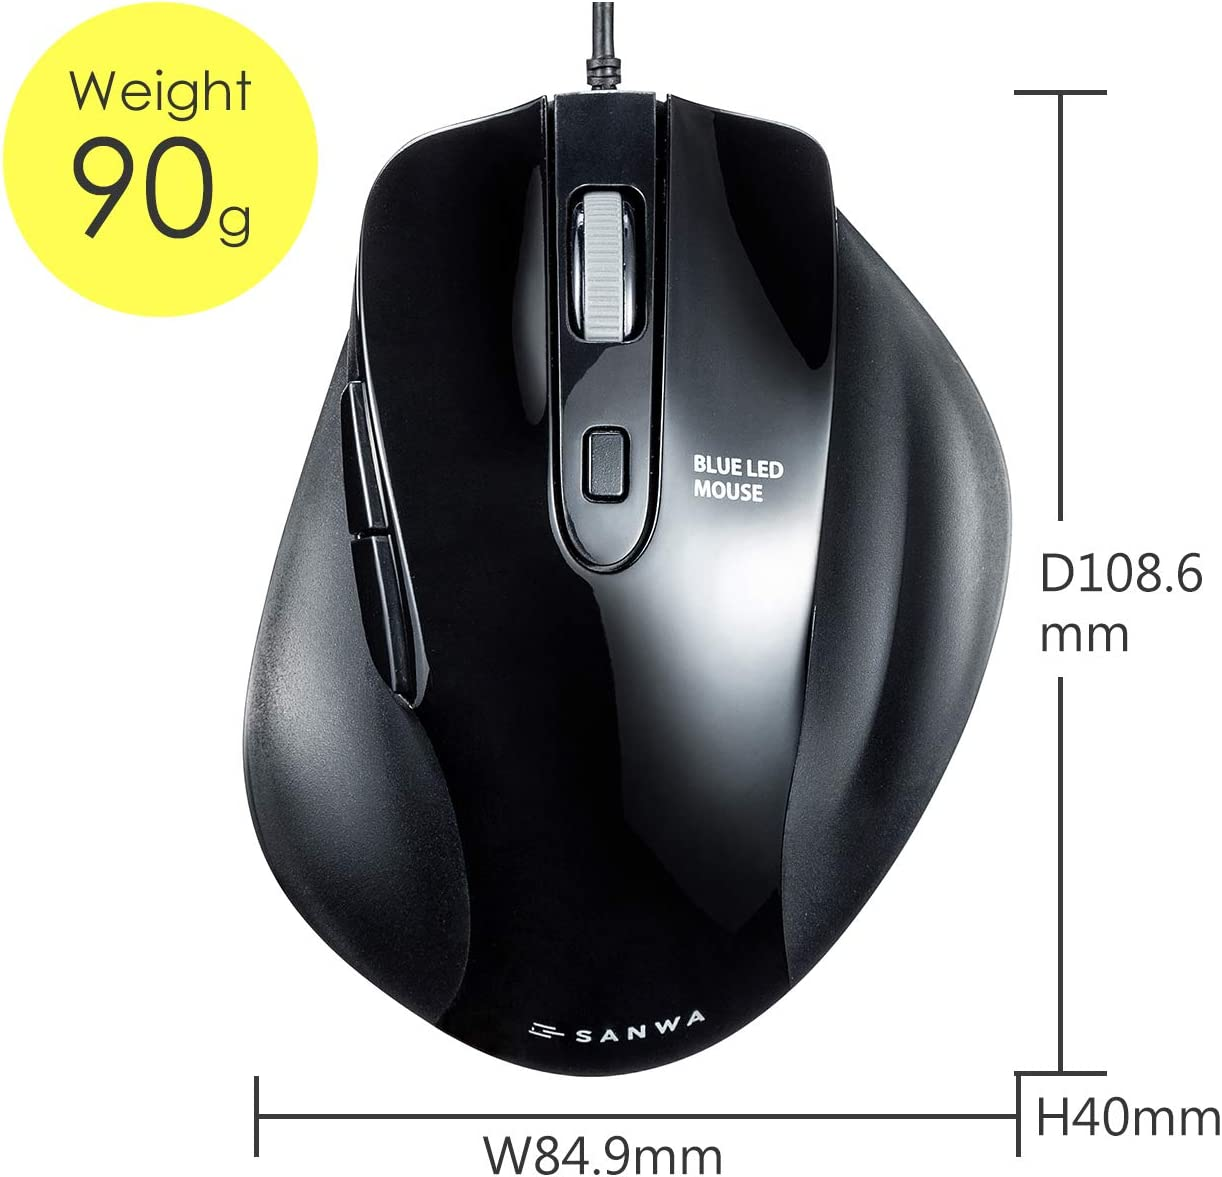 Wired Vertical Ergonomic Mouse Silent Blue LED Optical Computer Mice, SANWA Laptop Compatible with MacBook 1000//1600//2400//3200 DPI, 6 Buttons Windows Android Mac OS Japan Brand